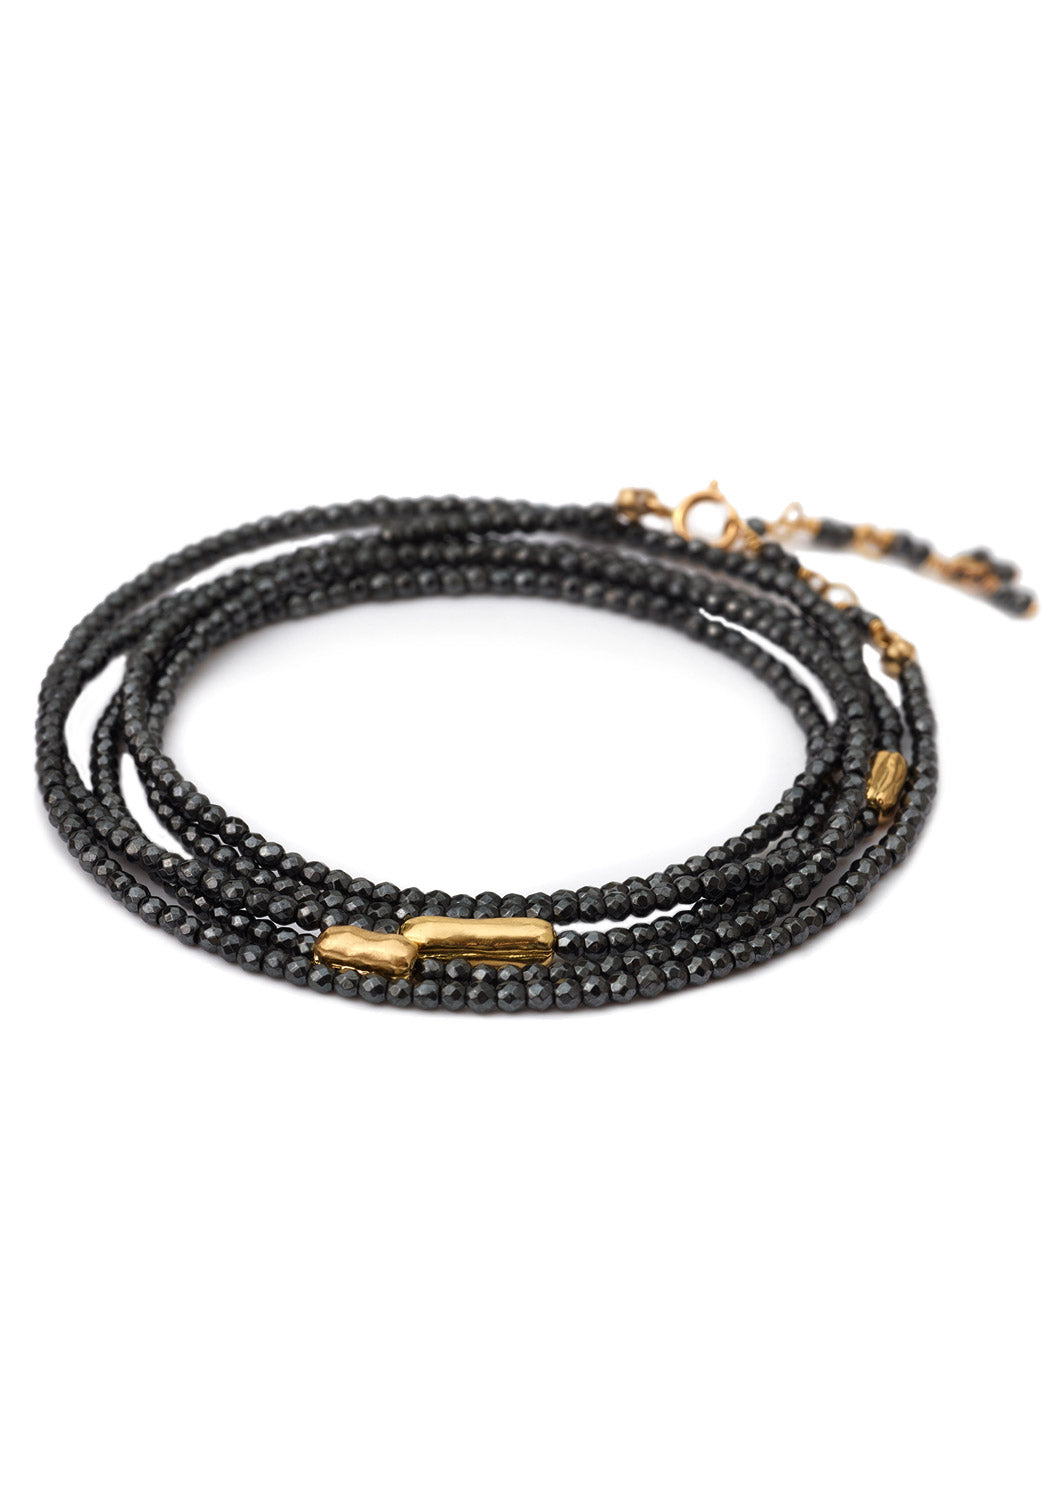 "Anne Sportun 34"" Long 3 Gold Accent Black Spinel River Wrap Bracelet"